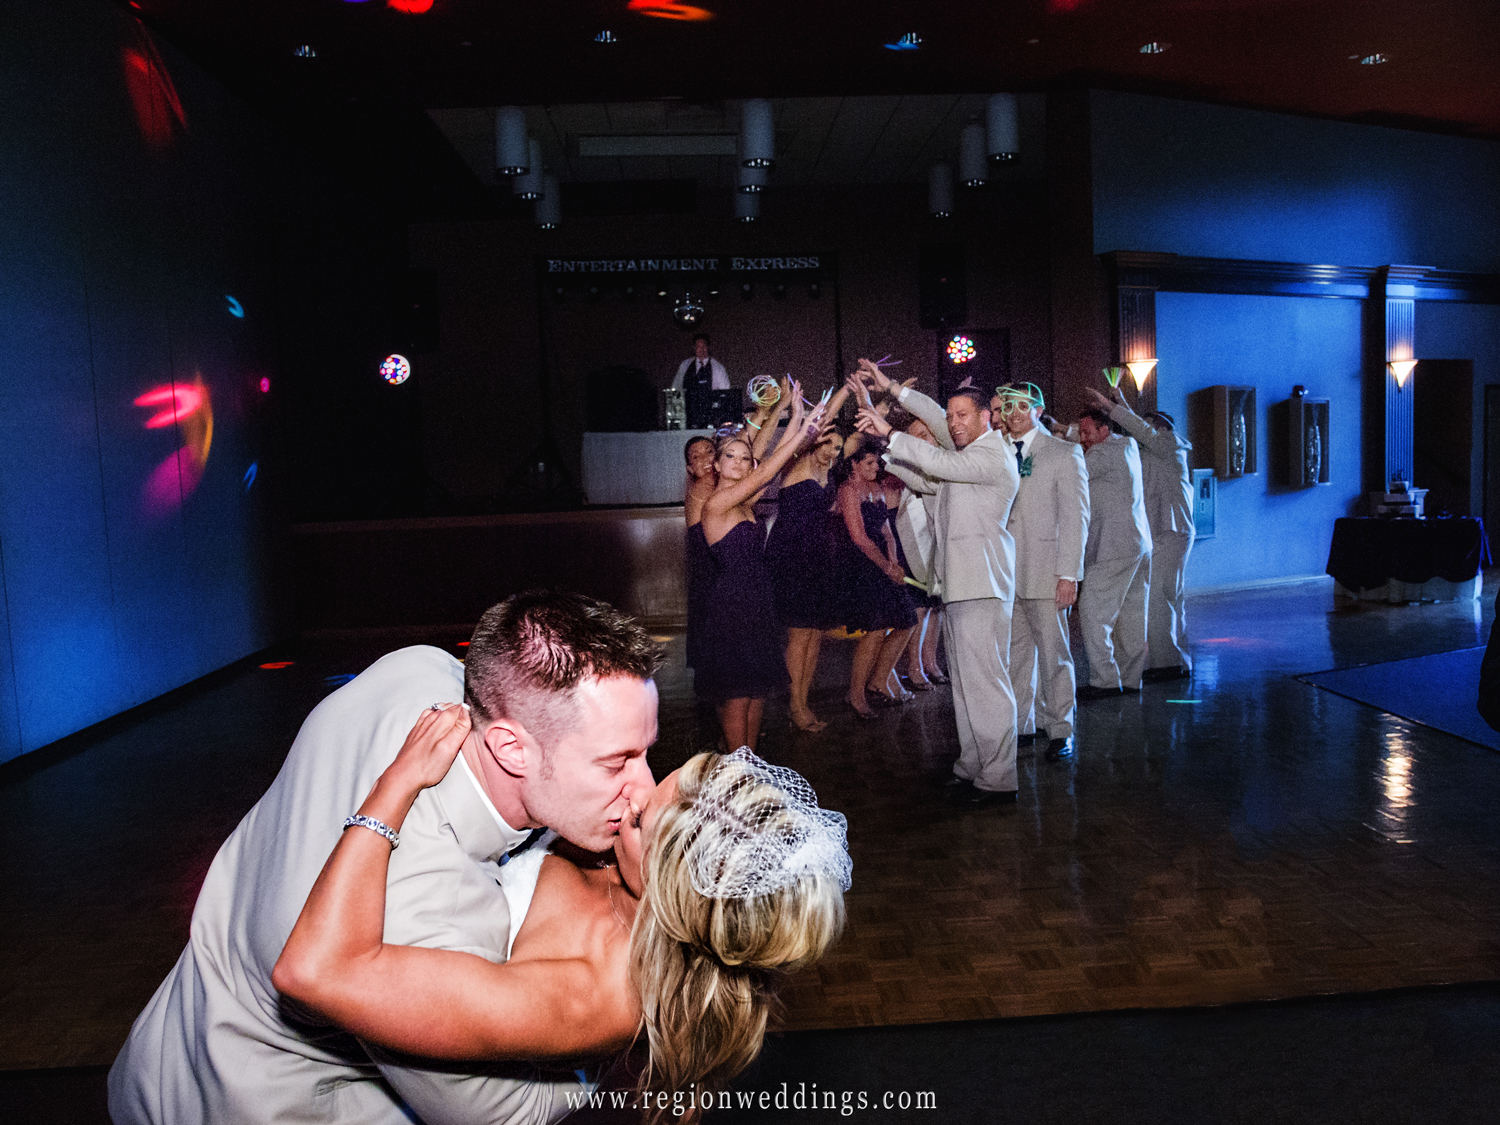 A groom dips his bride on the dance floor at the Halls of St. George during their introduction.